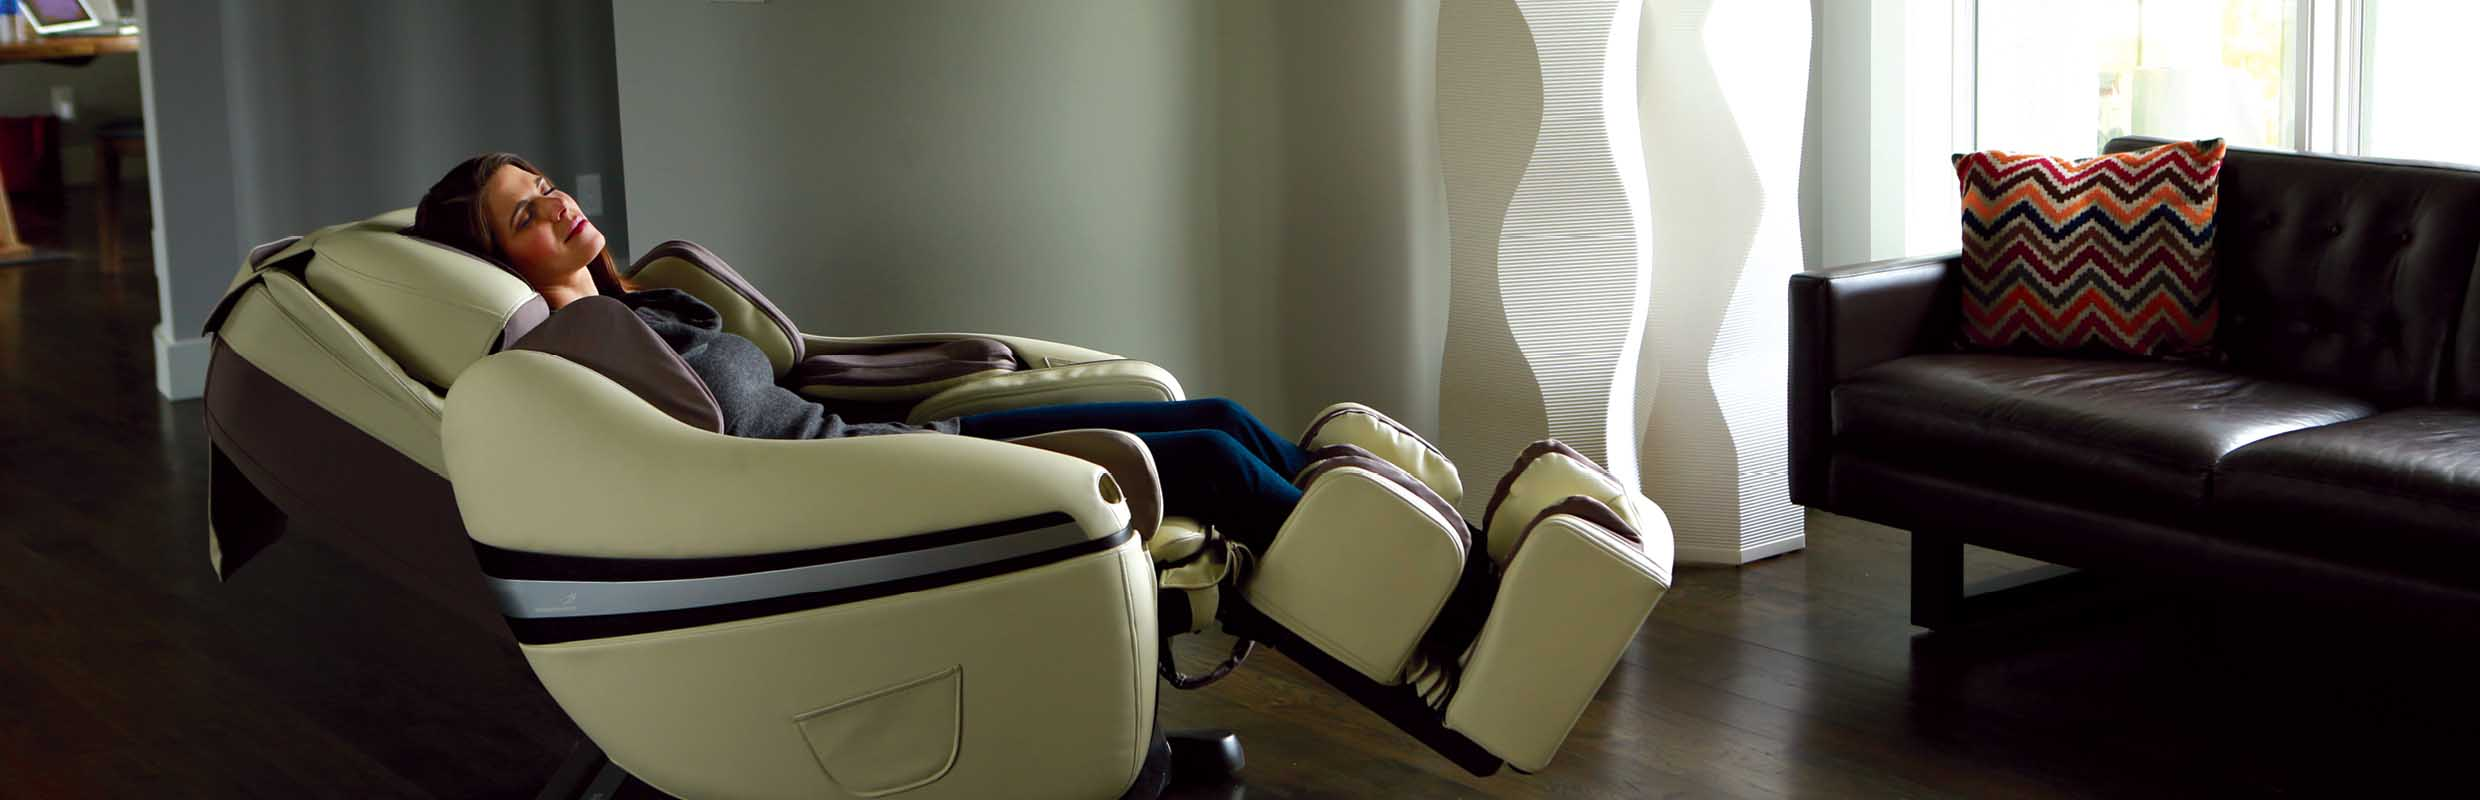 massage chair store sky accessories chairs healthy back